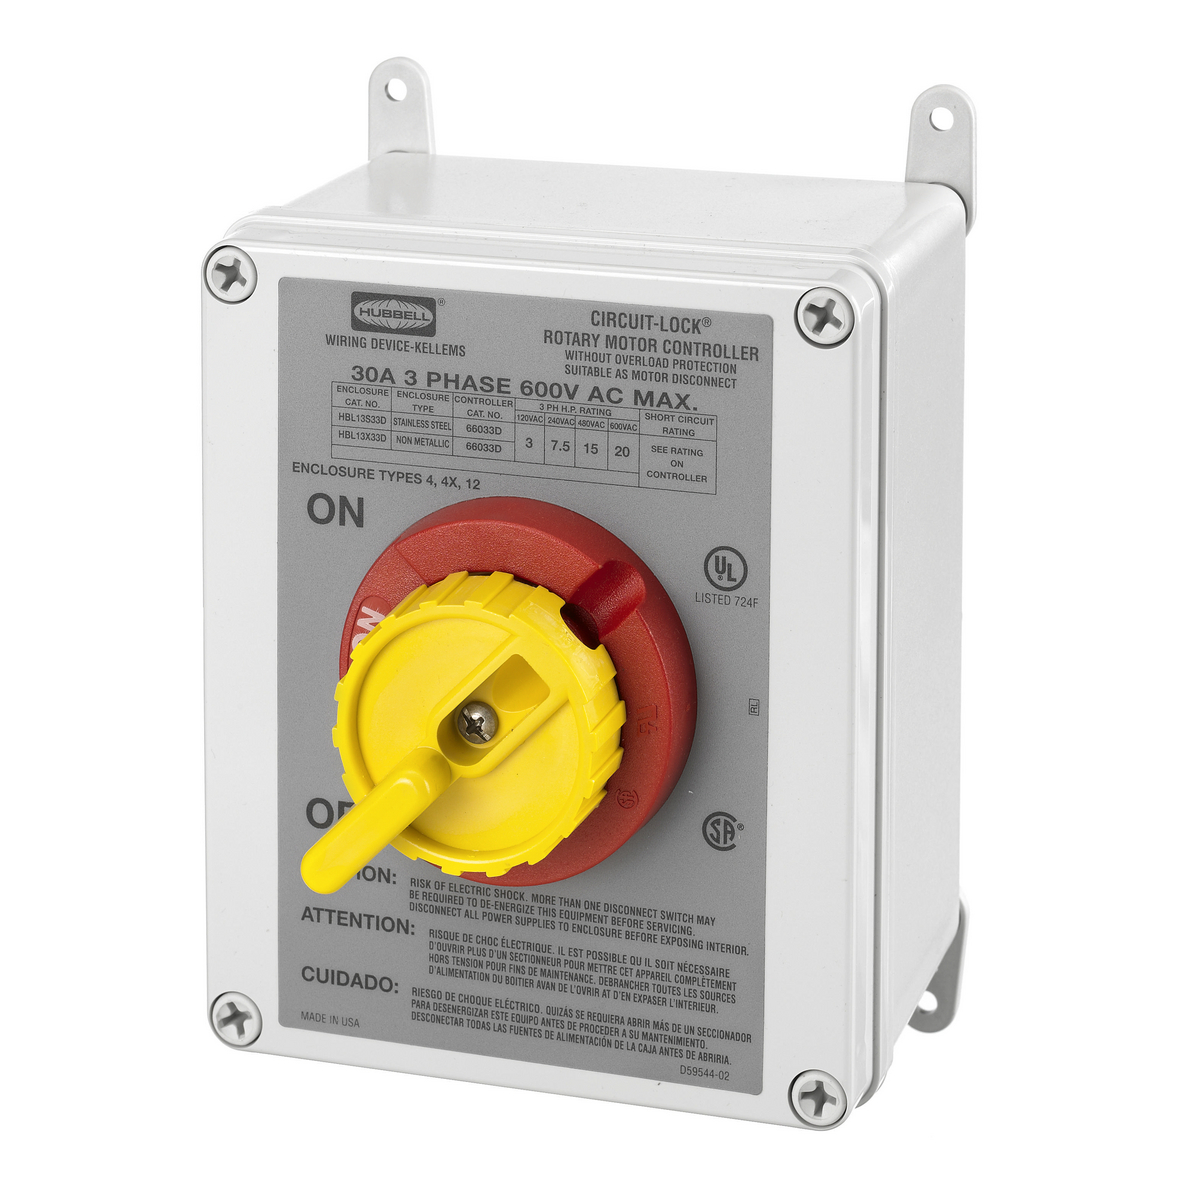 hight resolution of hubbell wiring device kellems switches and lighting controls industrial grade rotary switches